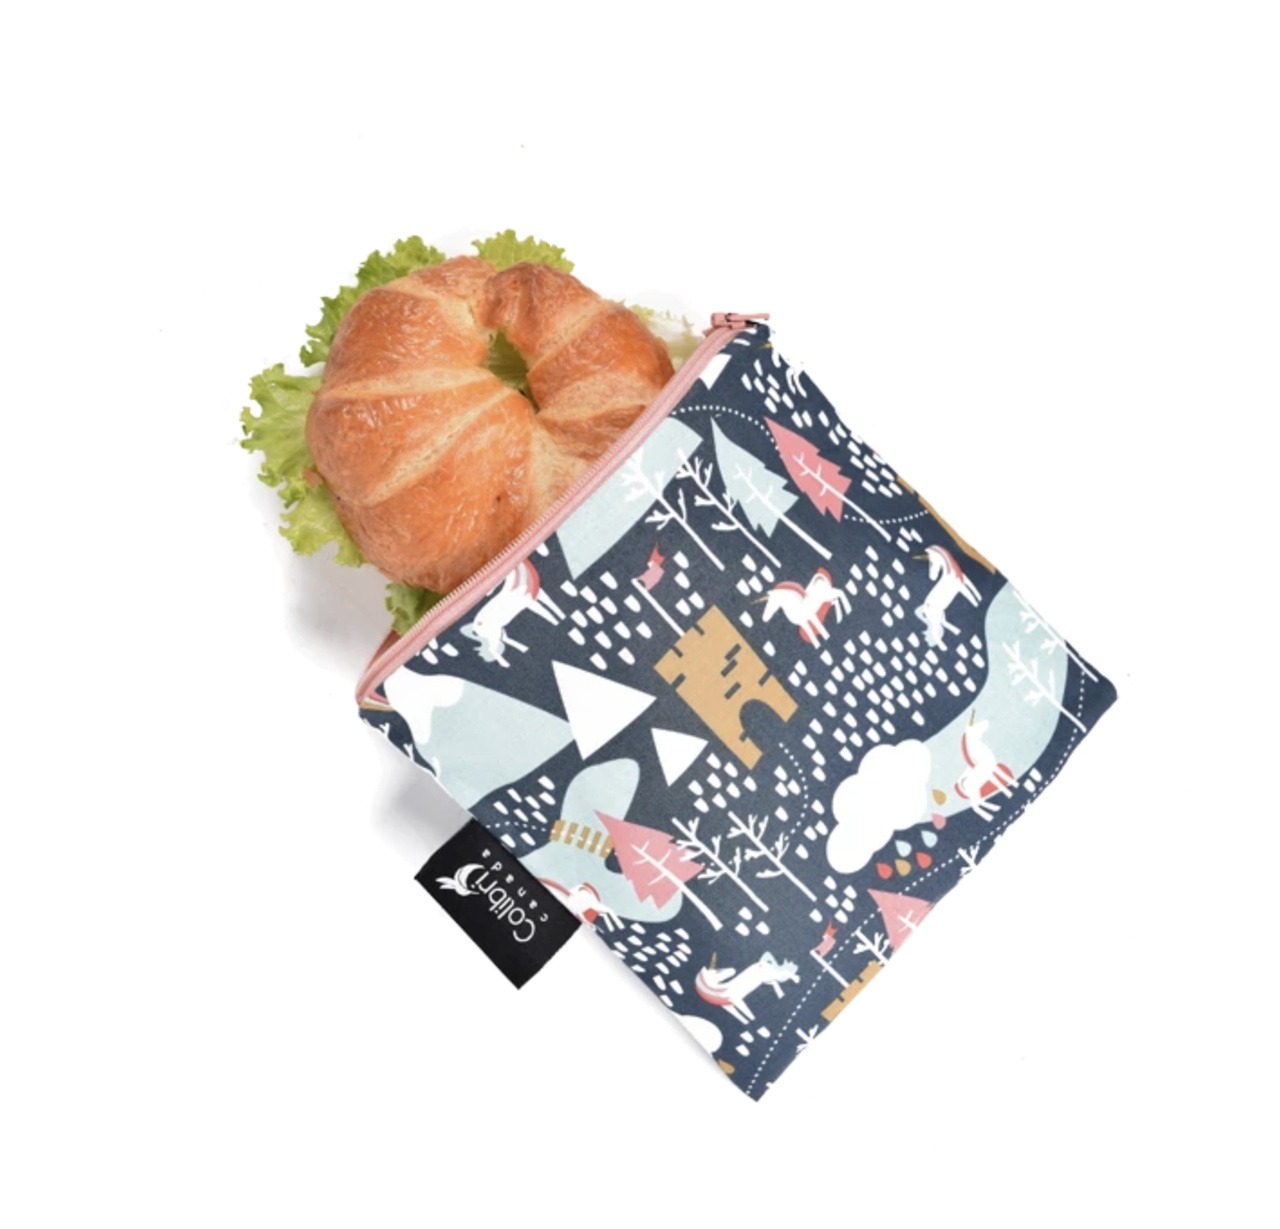 Fairy Tale Reusable Snack Bag (large)-1